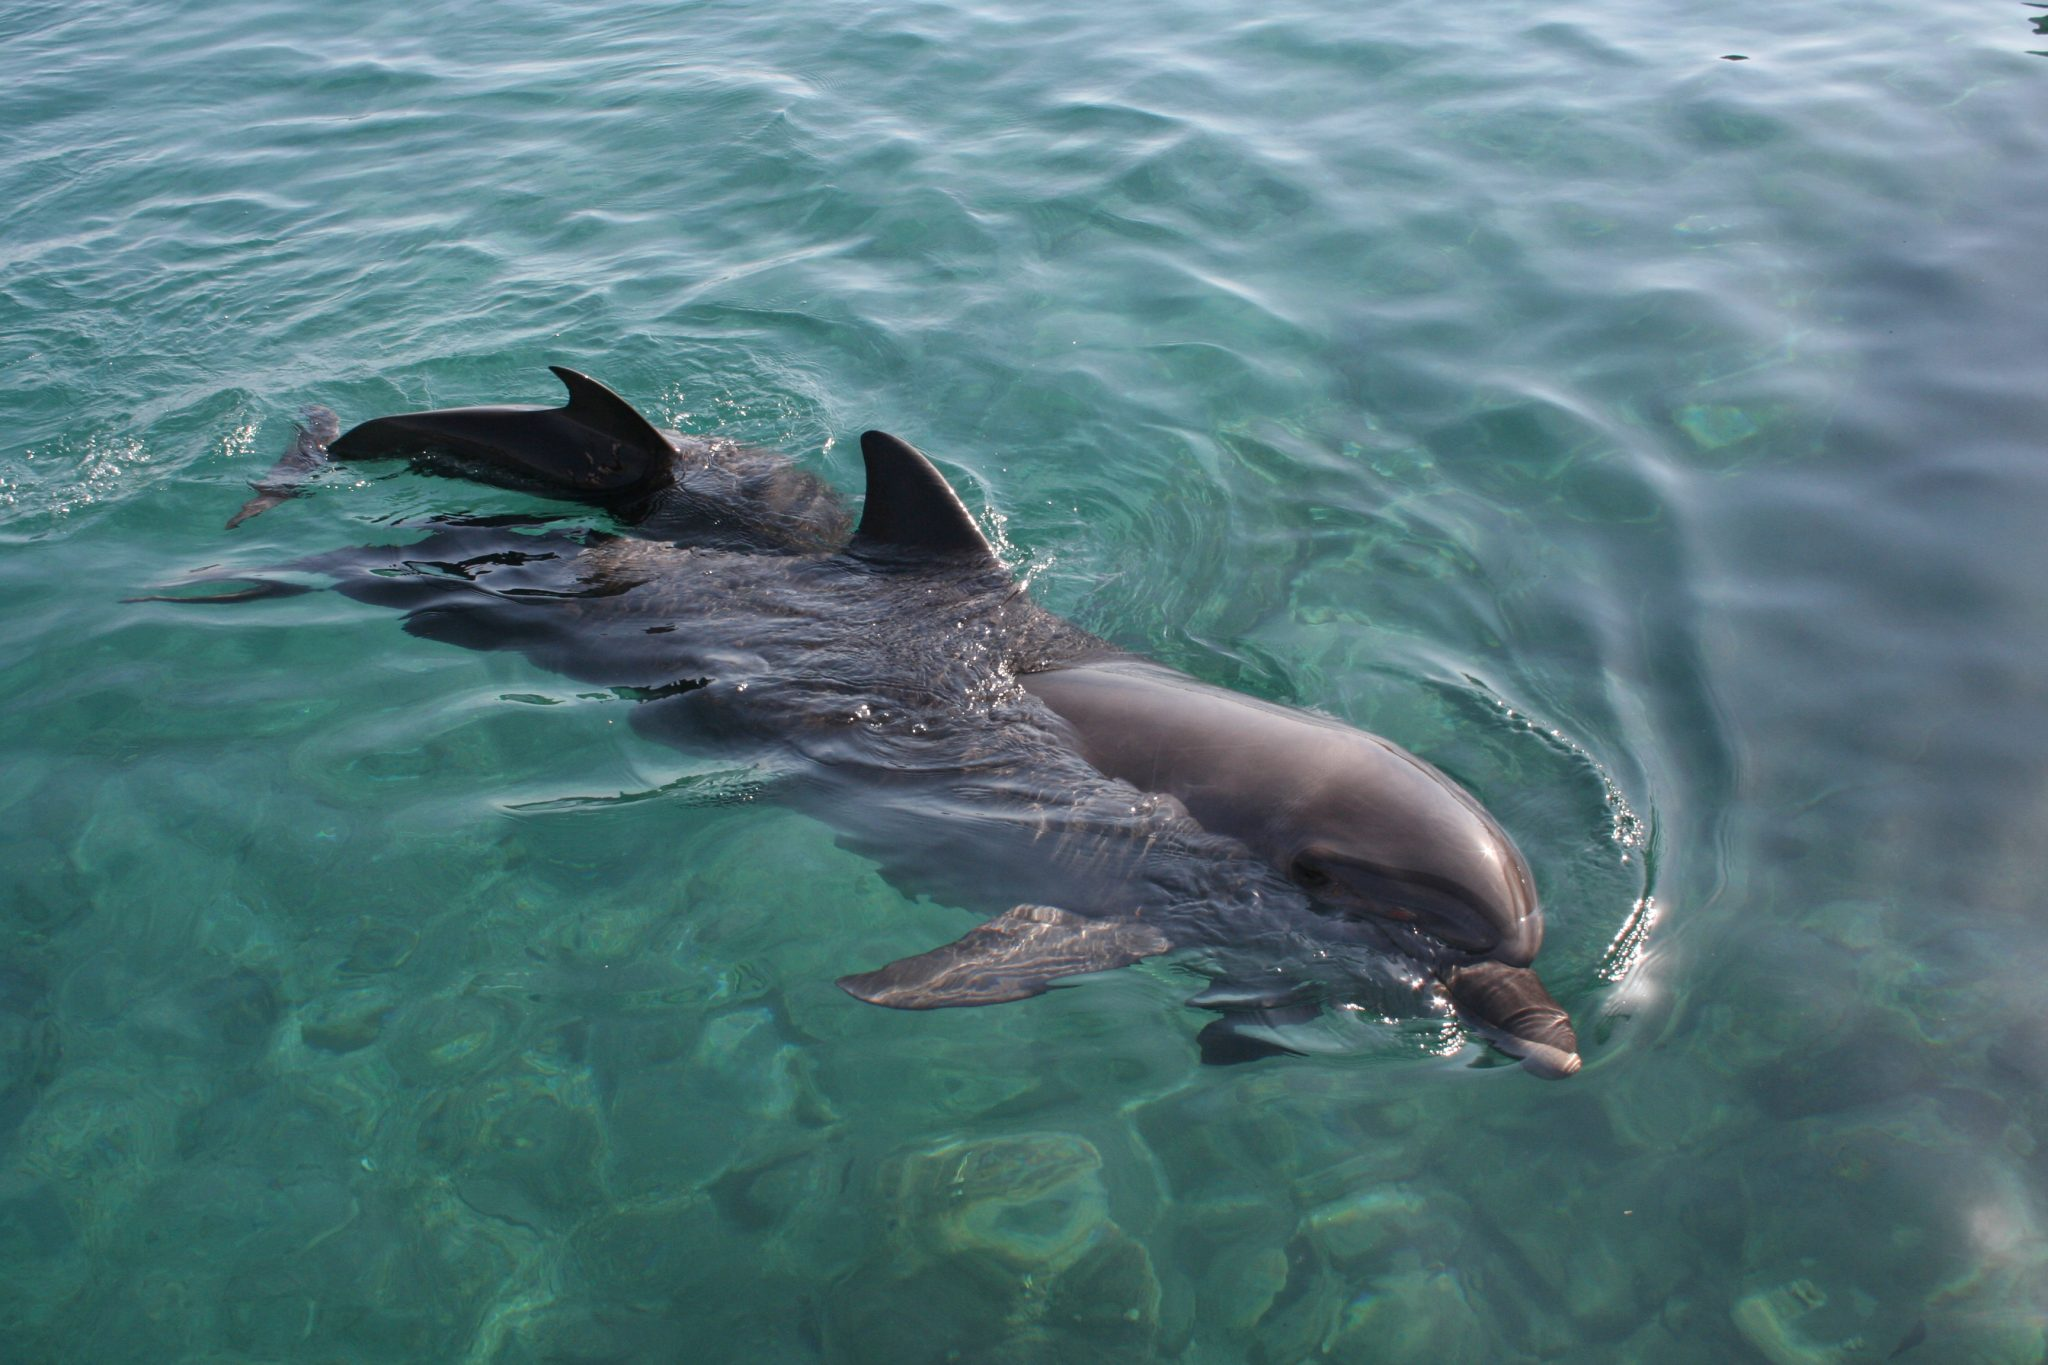 The Dolphin reef in Eilat allows people to fulfill their childhood dream of swimming with dolphins